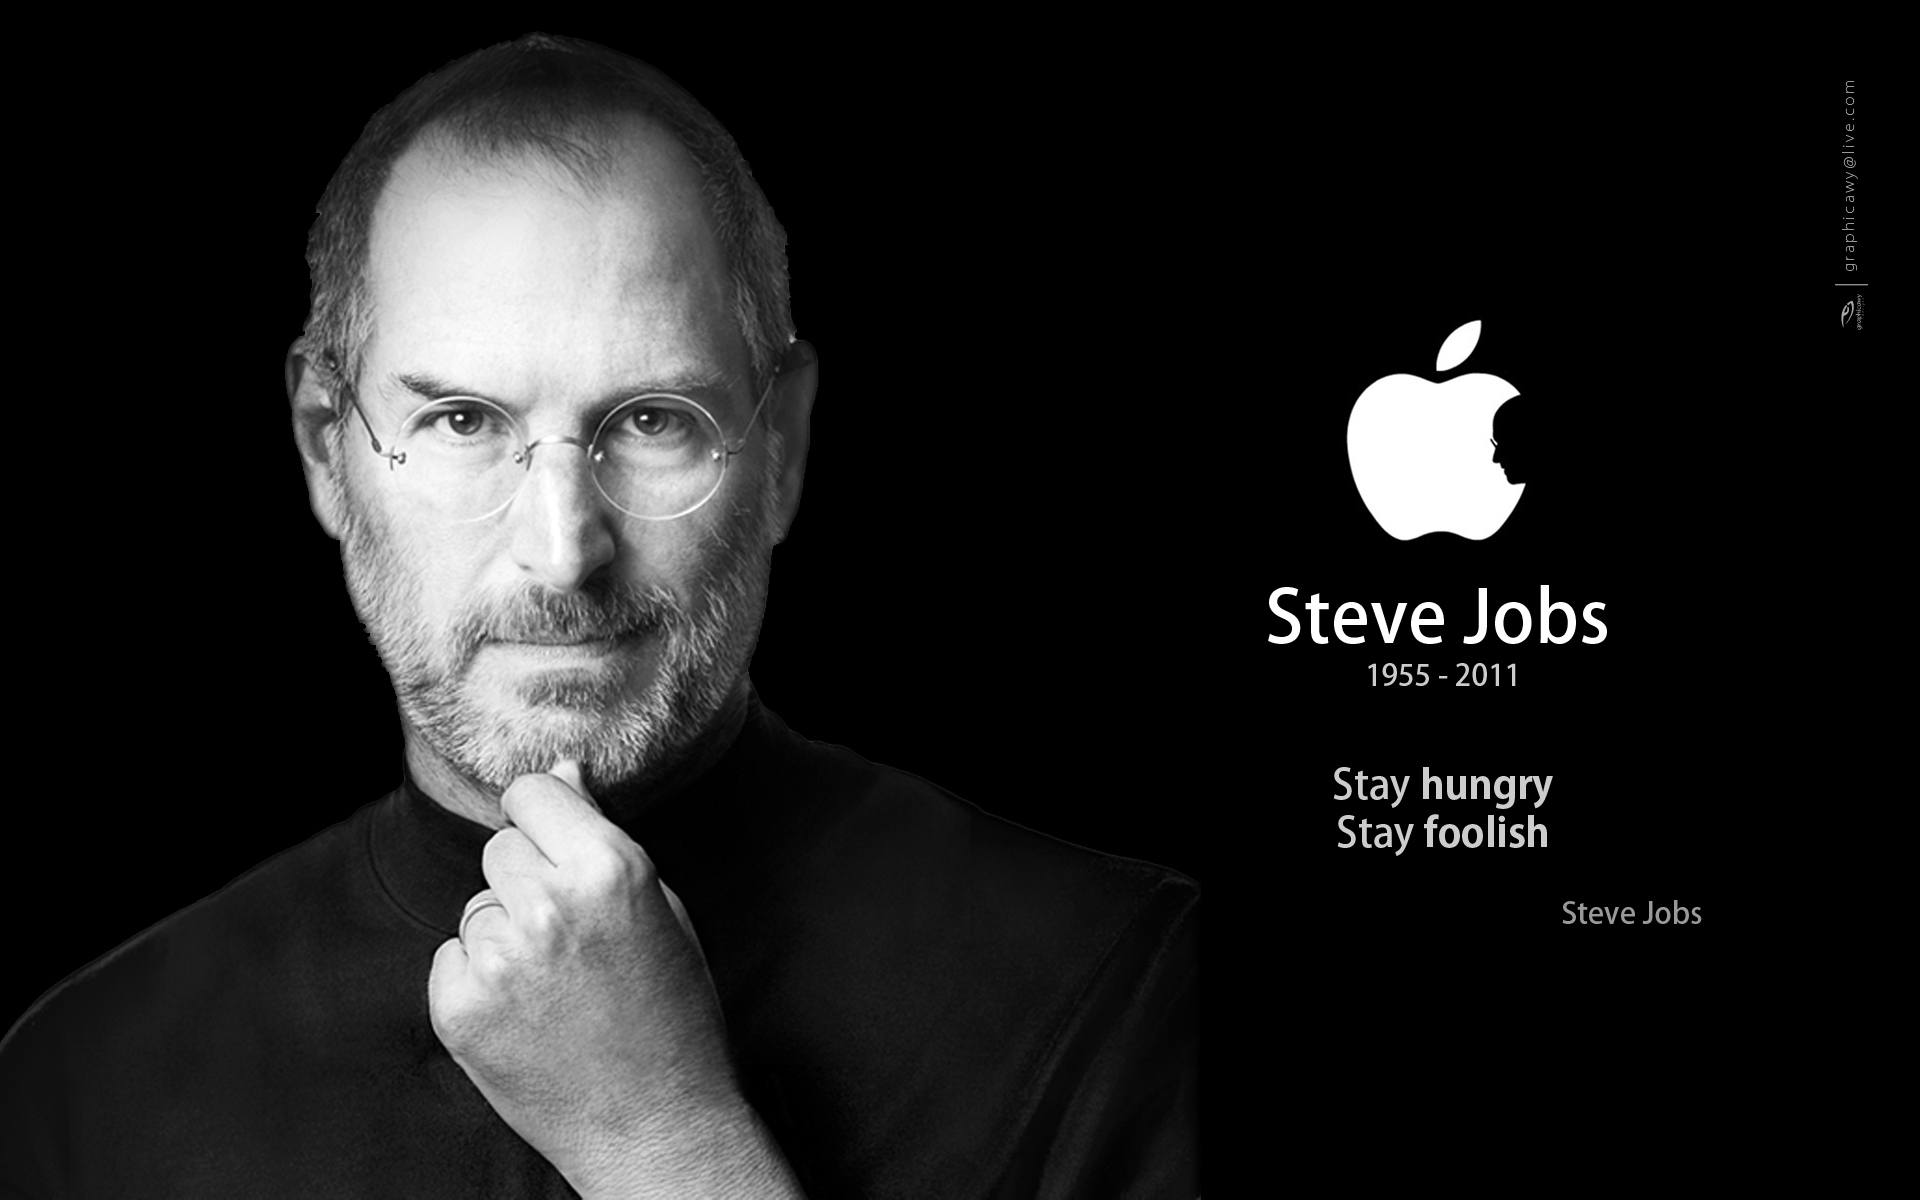 Steve Jobs. History of success